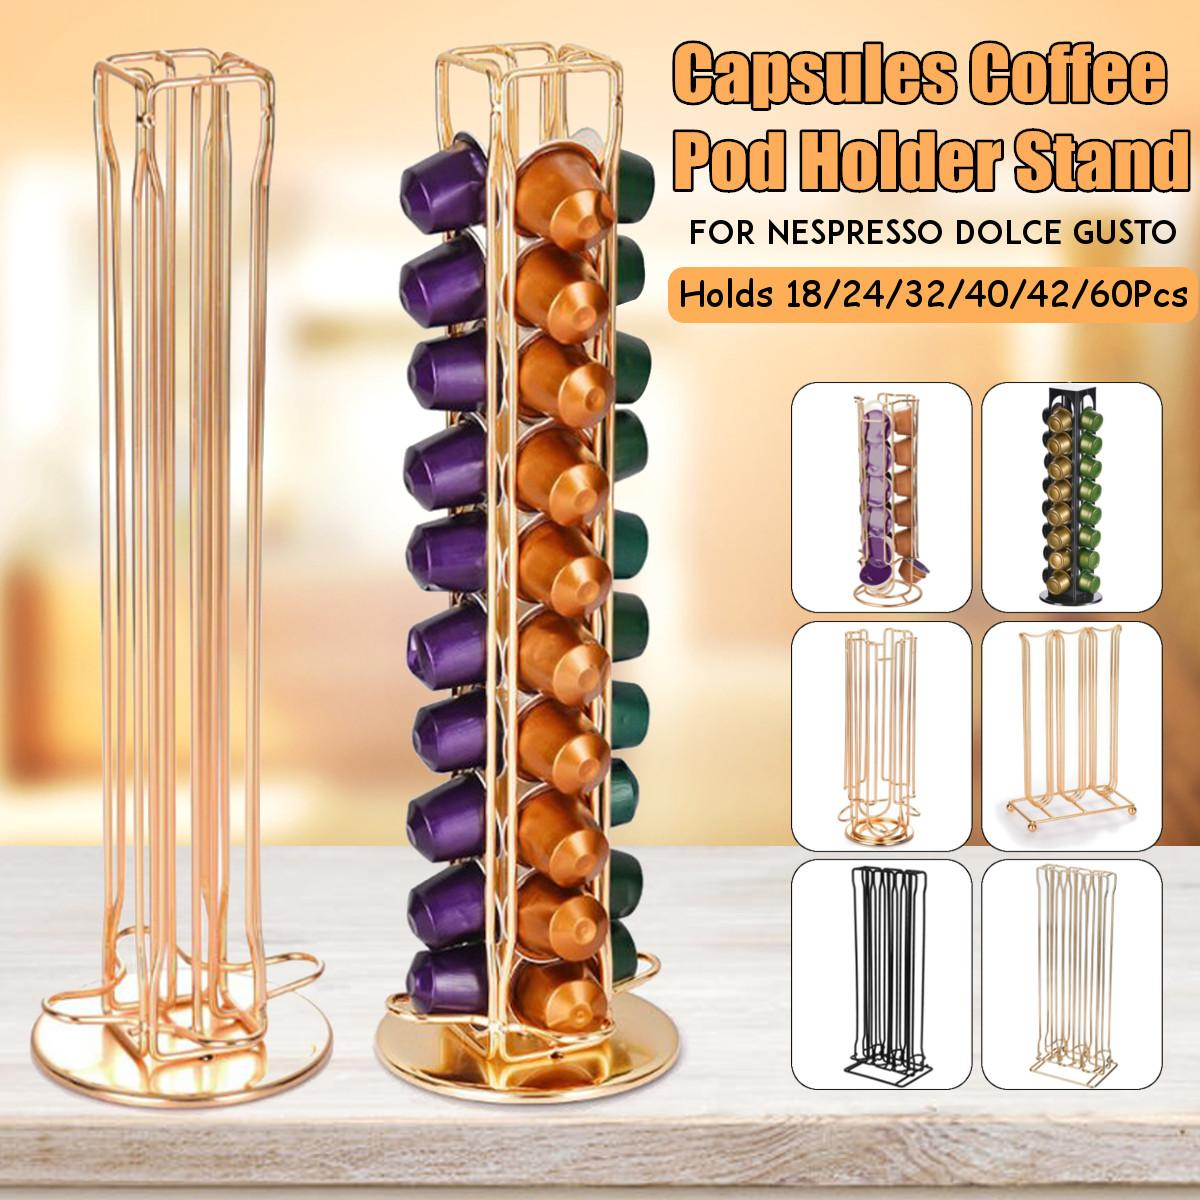 Practical Coffee Capsule Holder Tower Stand For 18/24/32/40/42/60 Capsules Storage Soporte Capsulas Nespresso Coffee Pod Holder